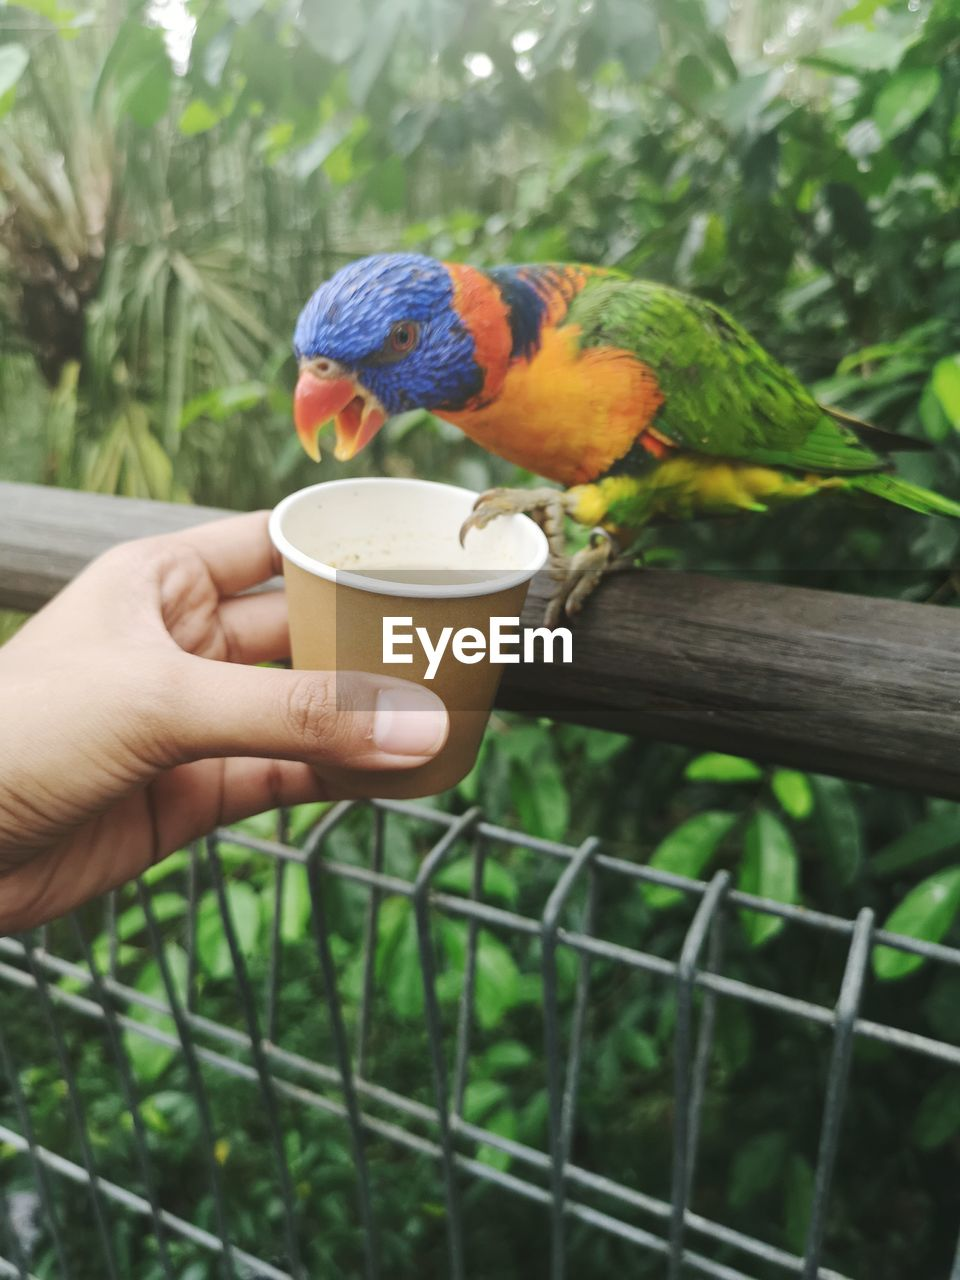 PERSON HOLDING A BIRD IN CUP